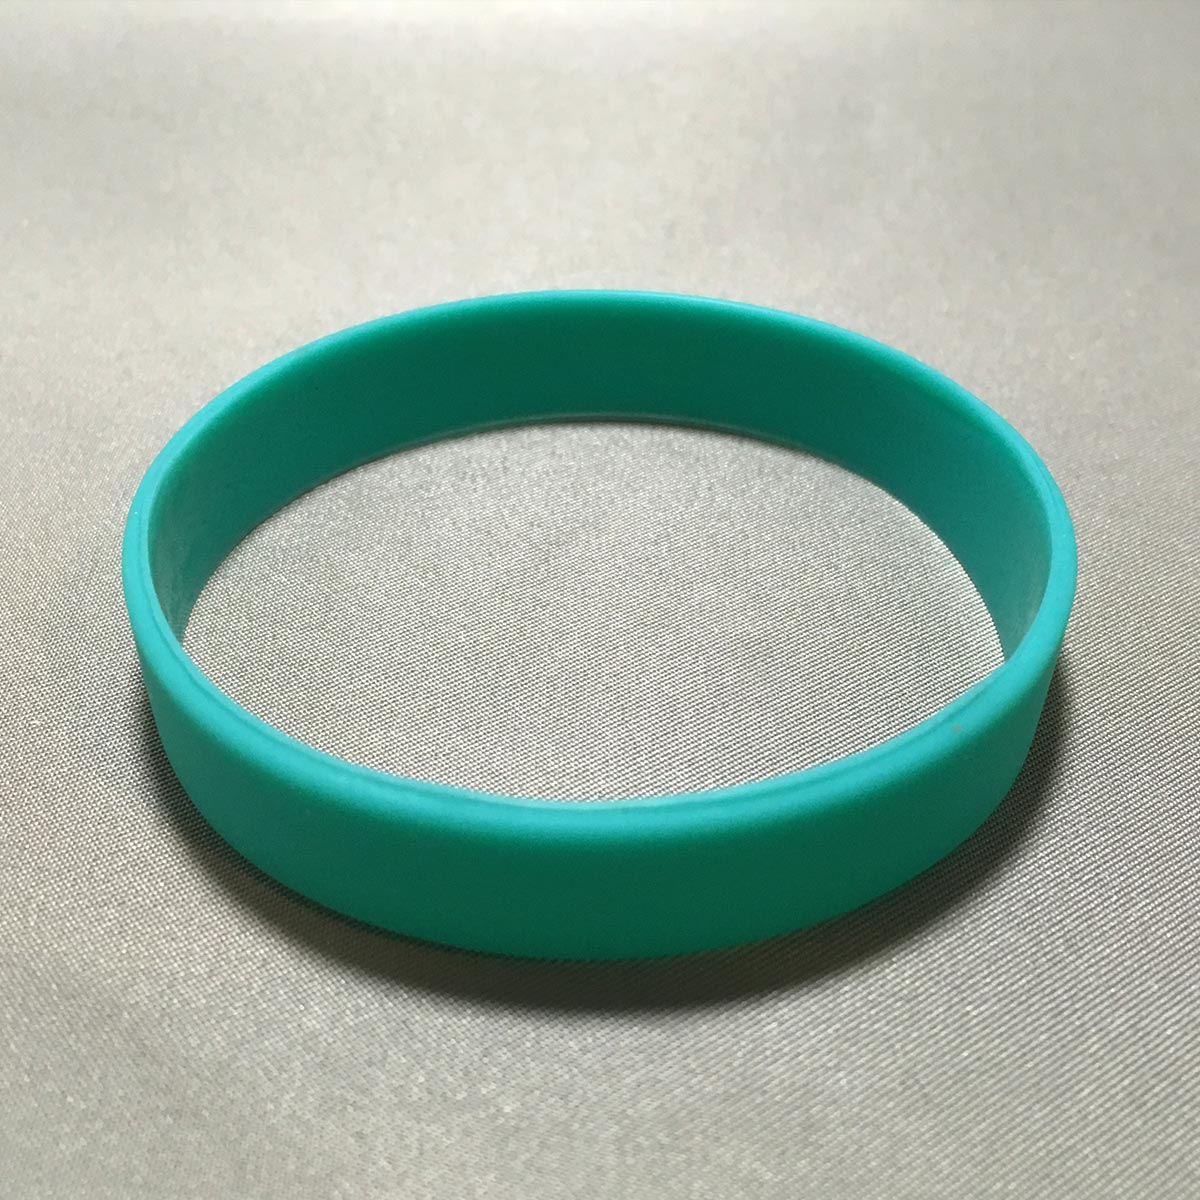 Insect Repelling Ring Silicon Type - ring